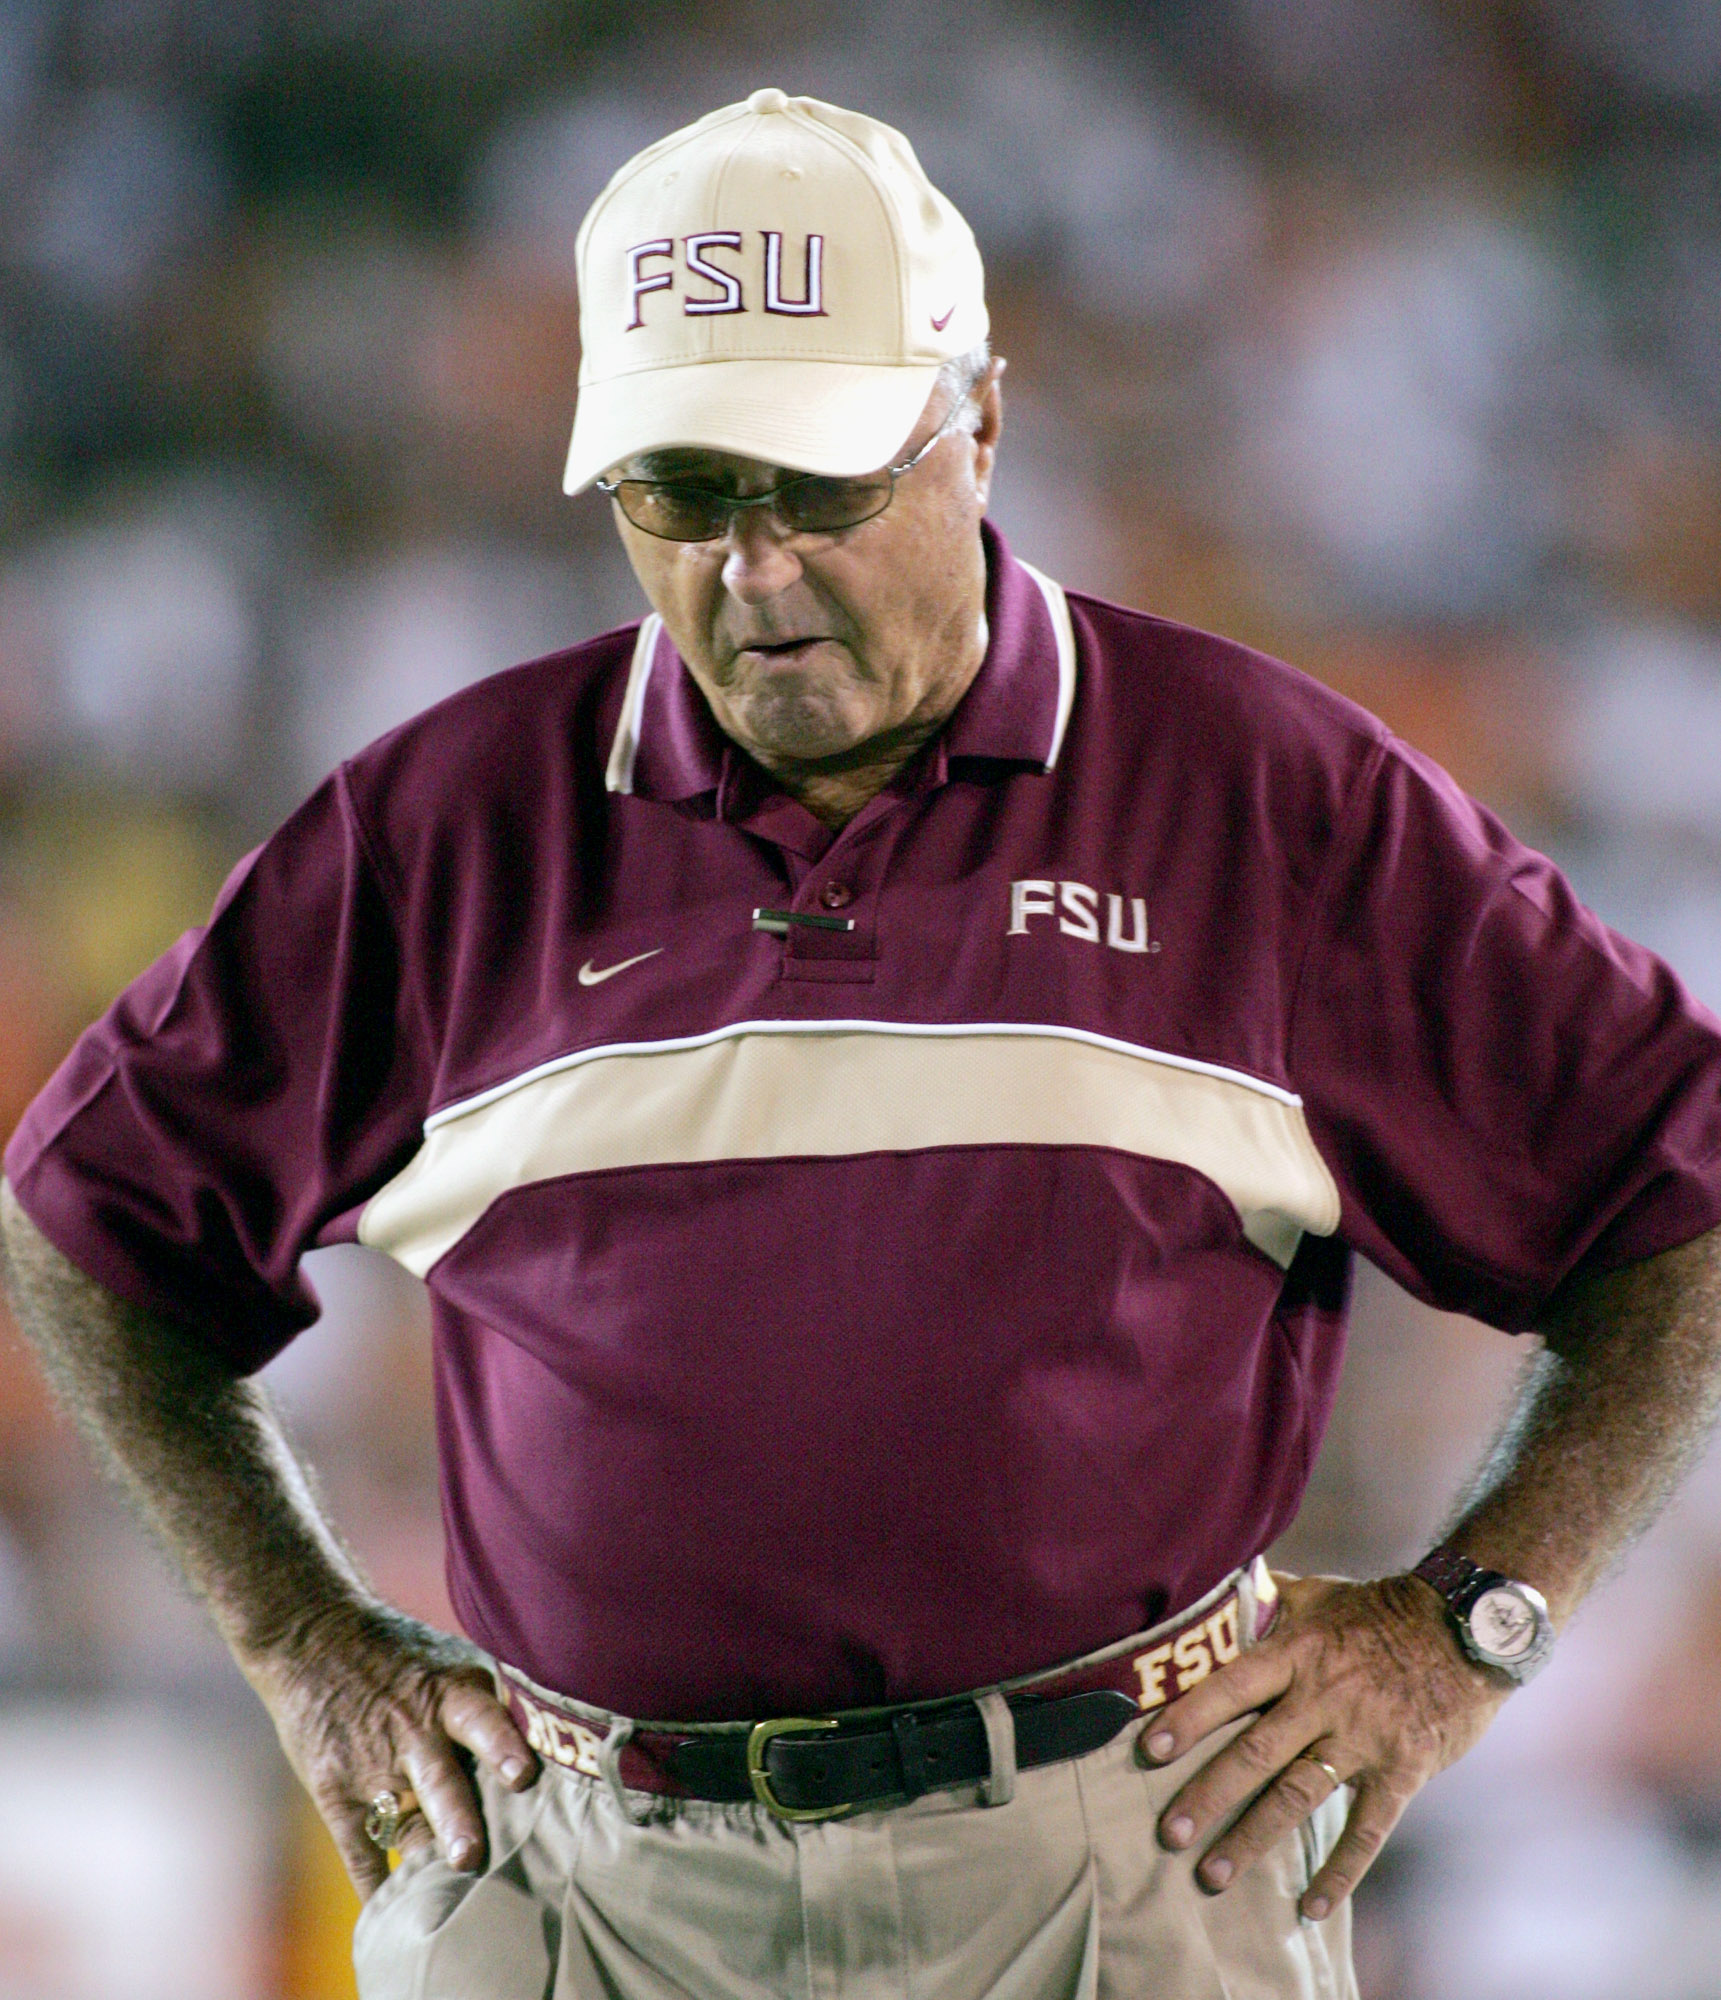 FILE - In this Sept. 10, 2004, file photo, Florida State coach Bobby Bowden paces along the sideline during an NCAA college football game against Miami in Miami. New coaches, new players, new era, but the 'Canes (3-1) and 12th-ranked 'Noles (4-0) tee it u